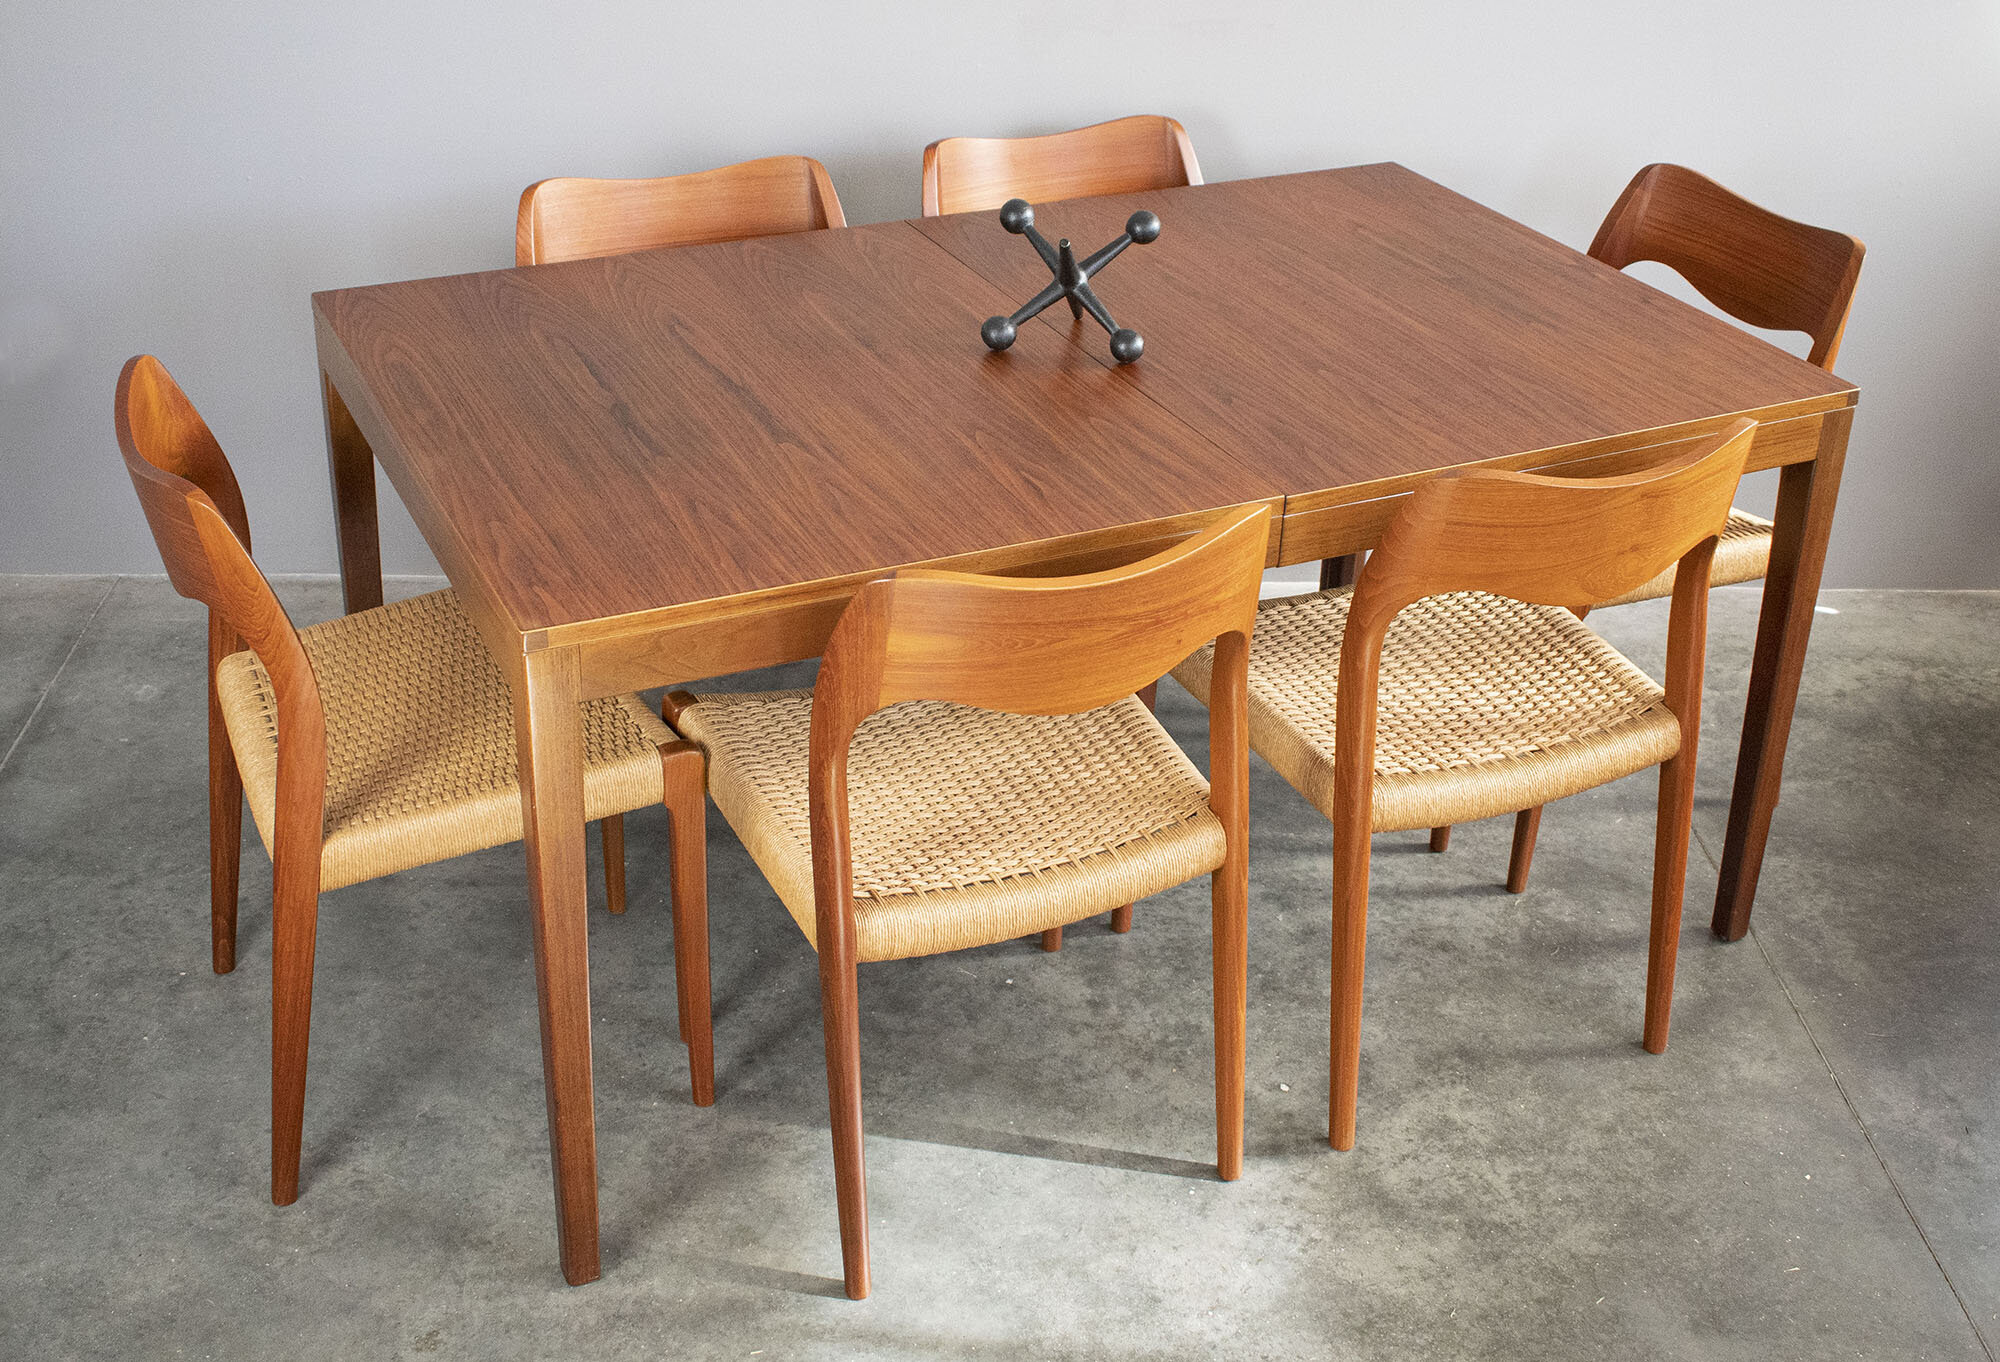 Rare George Nelson For Herman Miller Walnut Dining Table Sold Vintage Modern Maine